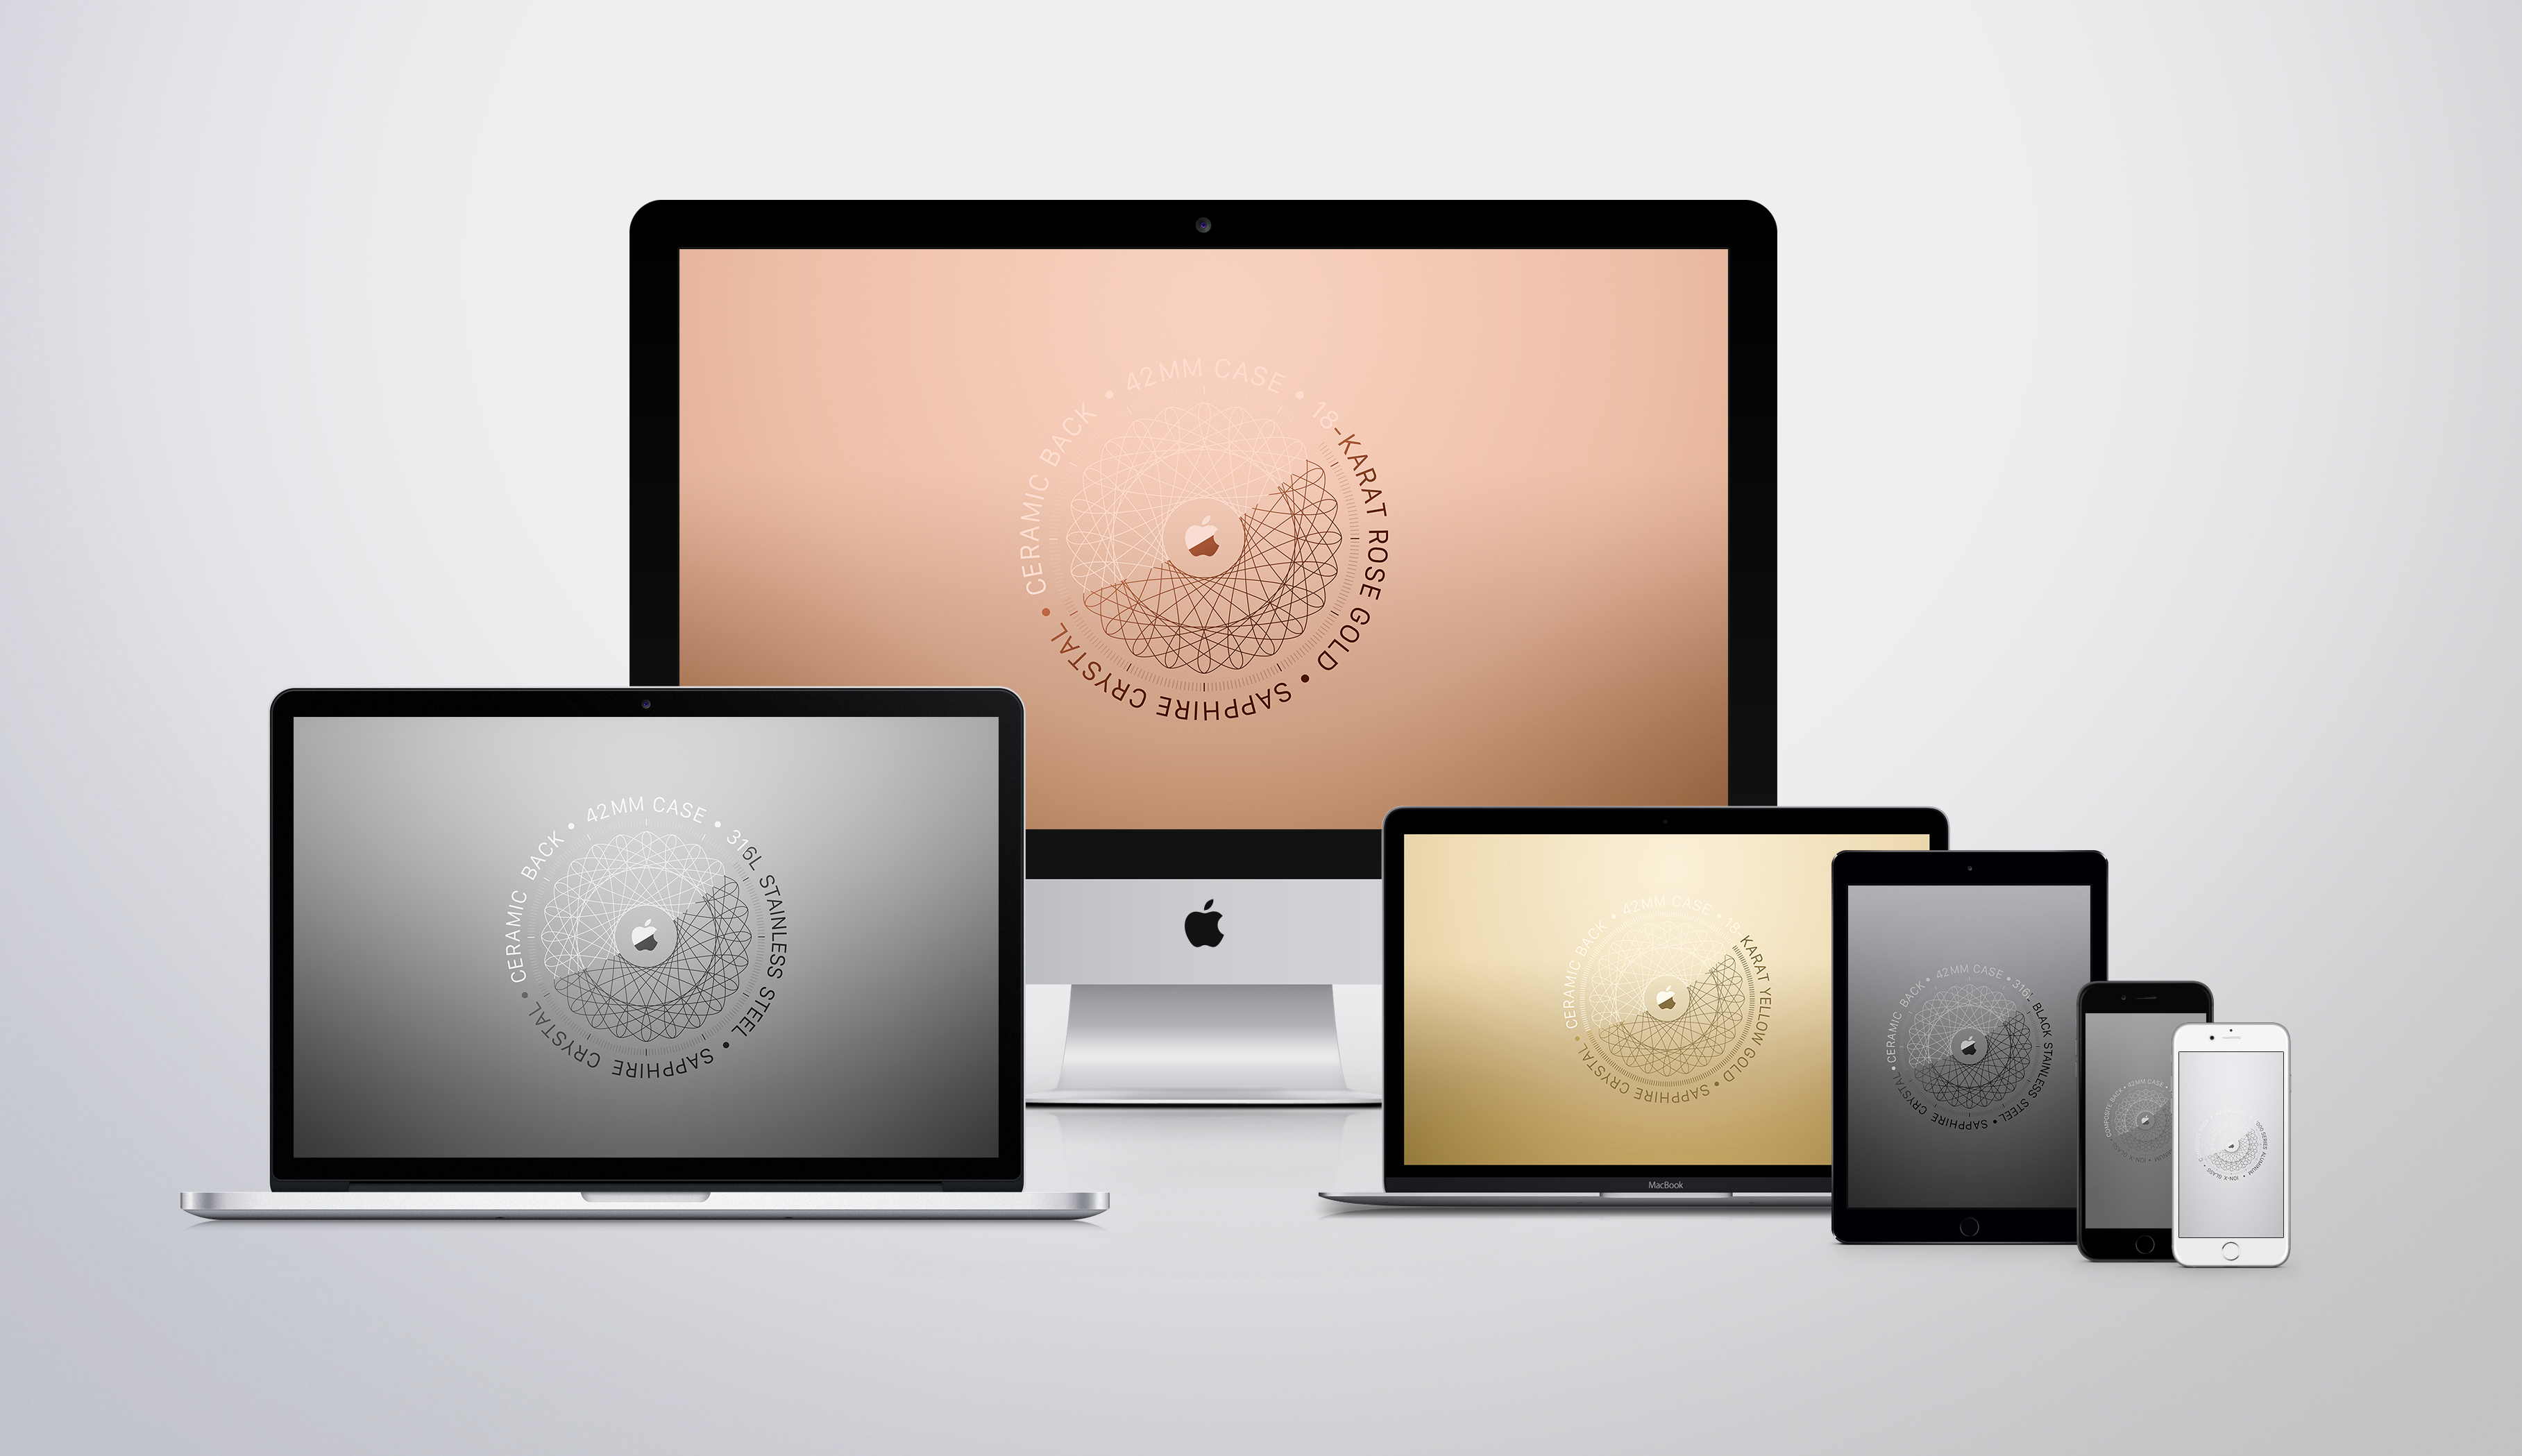 Apple Watch Certification Wallpaper Set